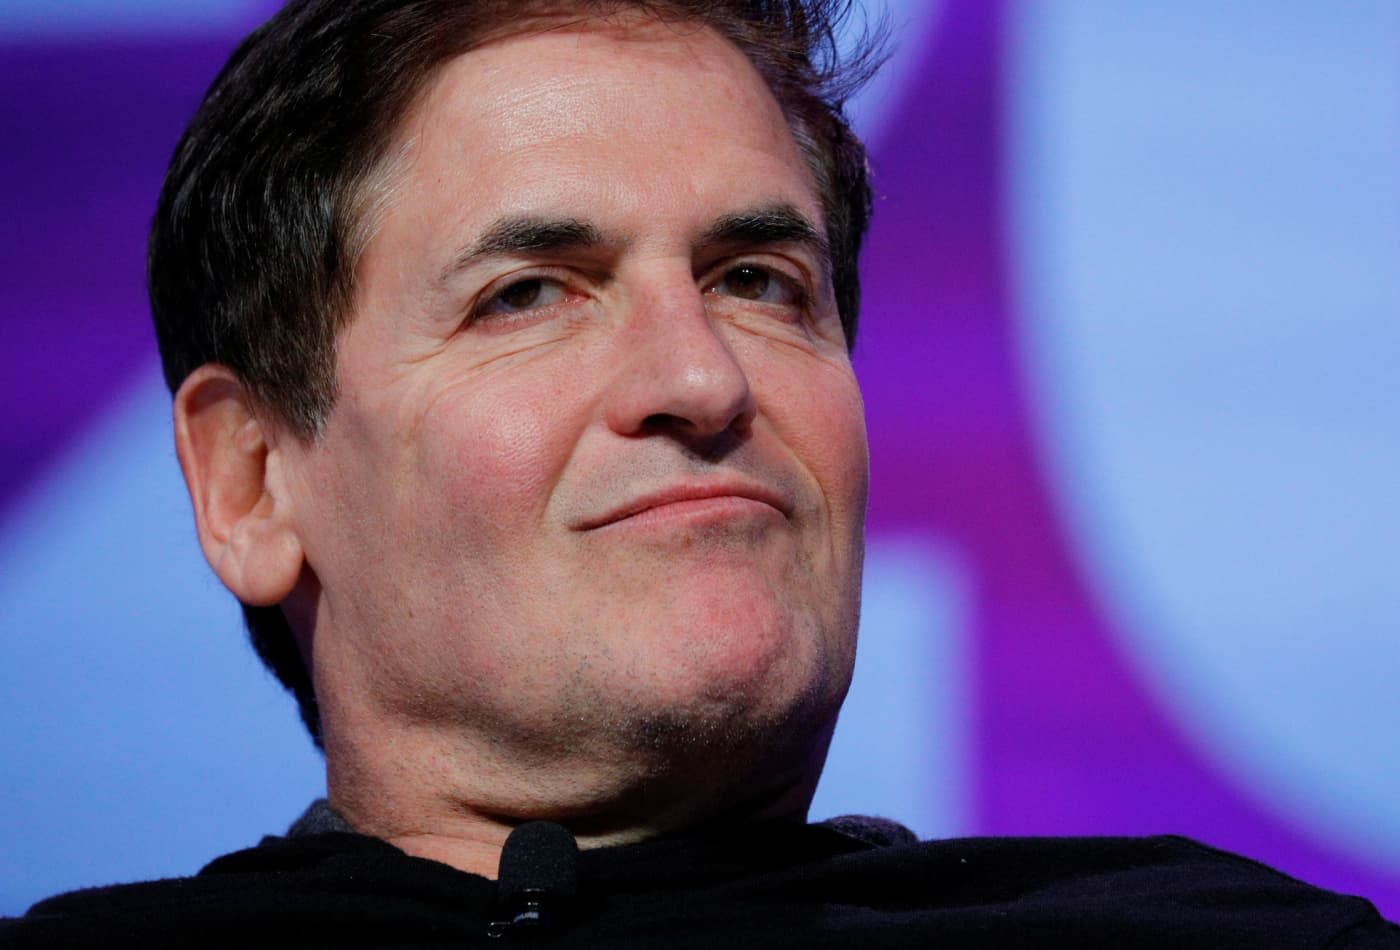 Mark Cuban on whether getting an MBA is worth it